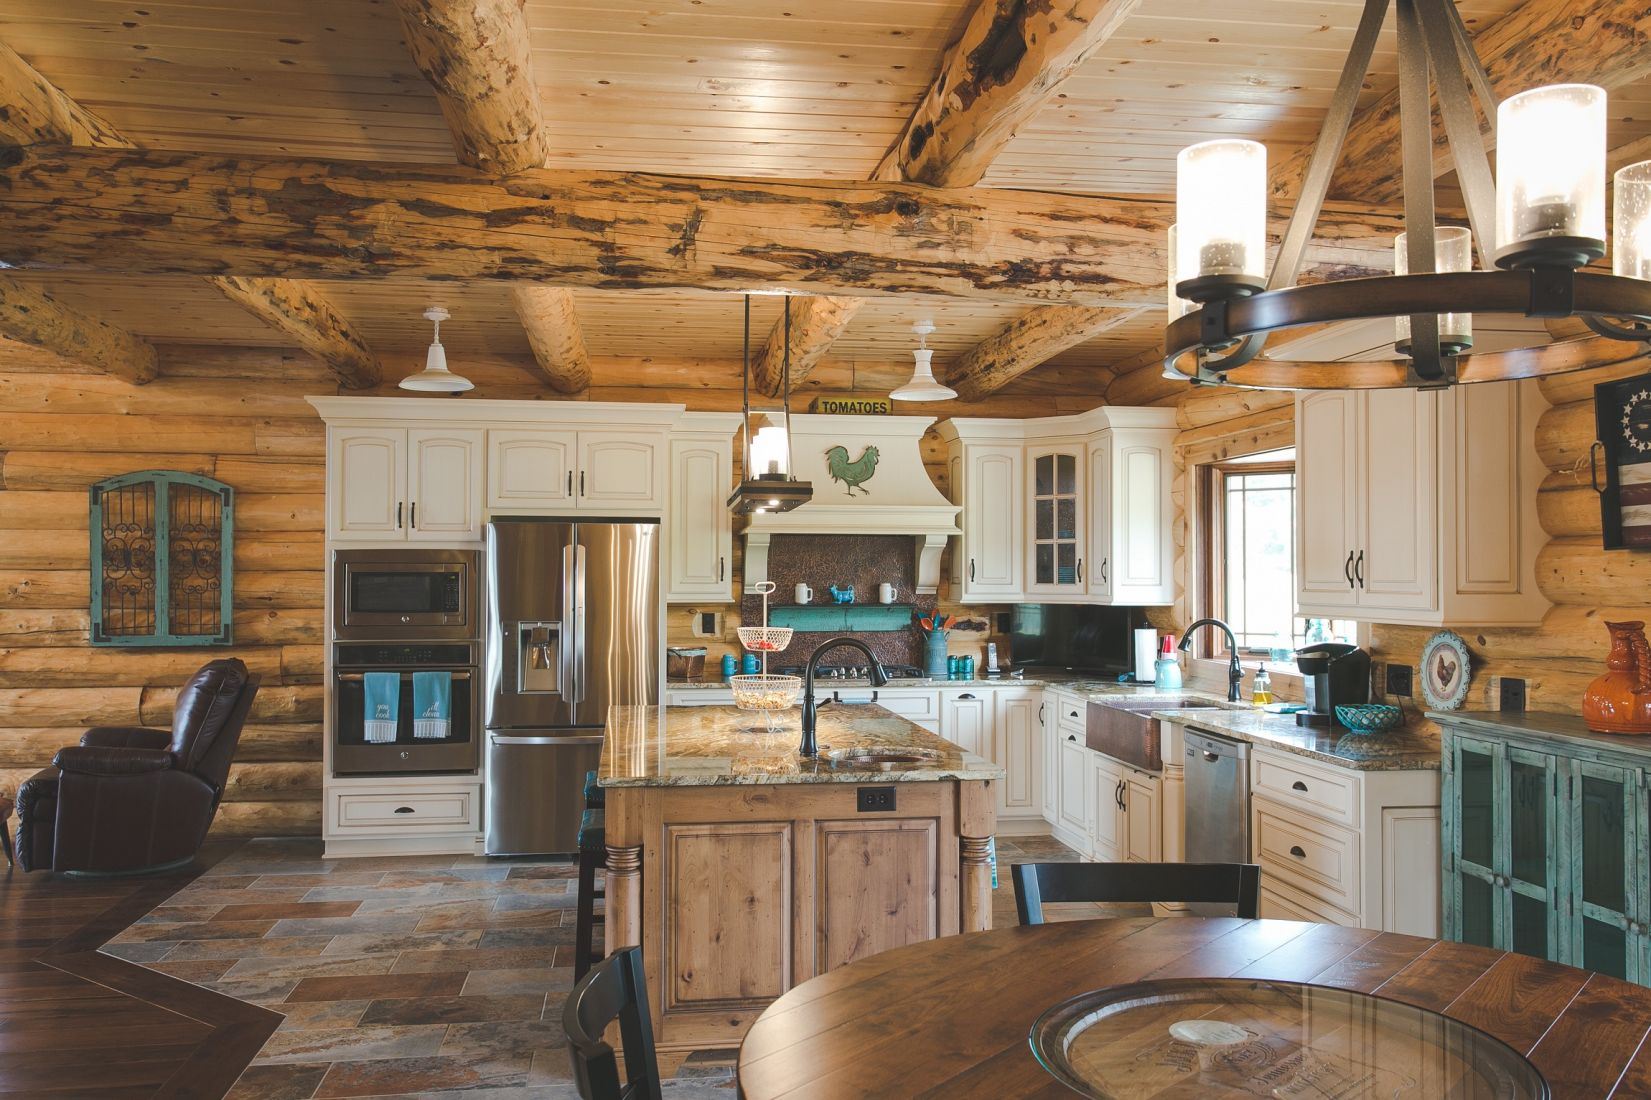 White Kitchen Cabinets in a Log home with Stainless Steel Appliances